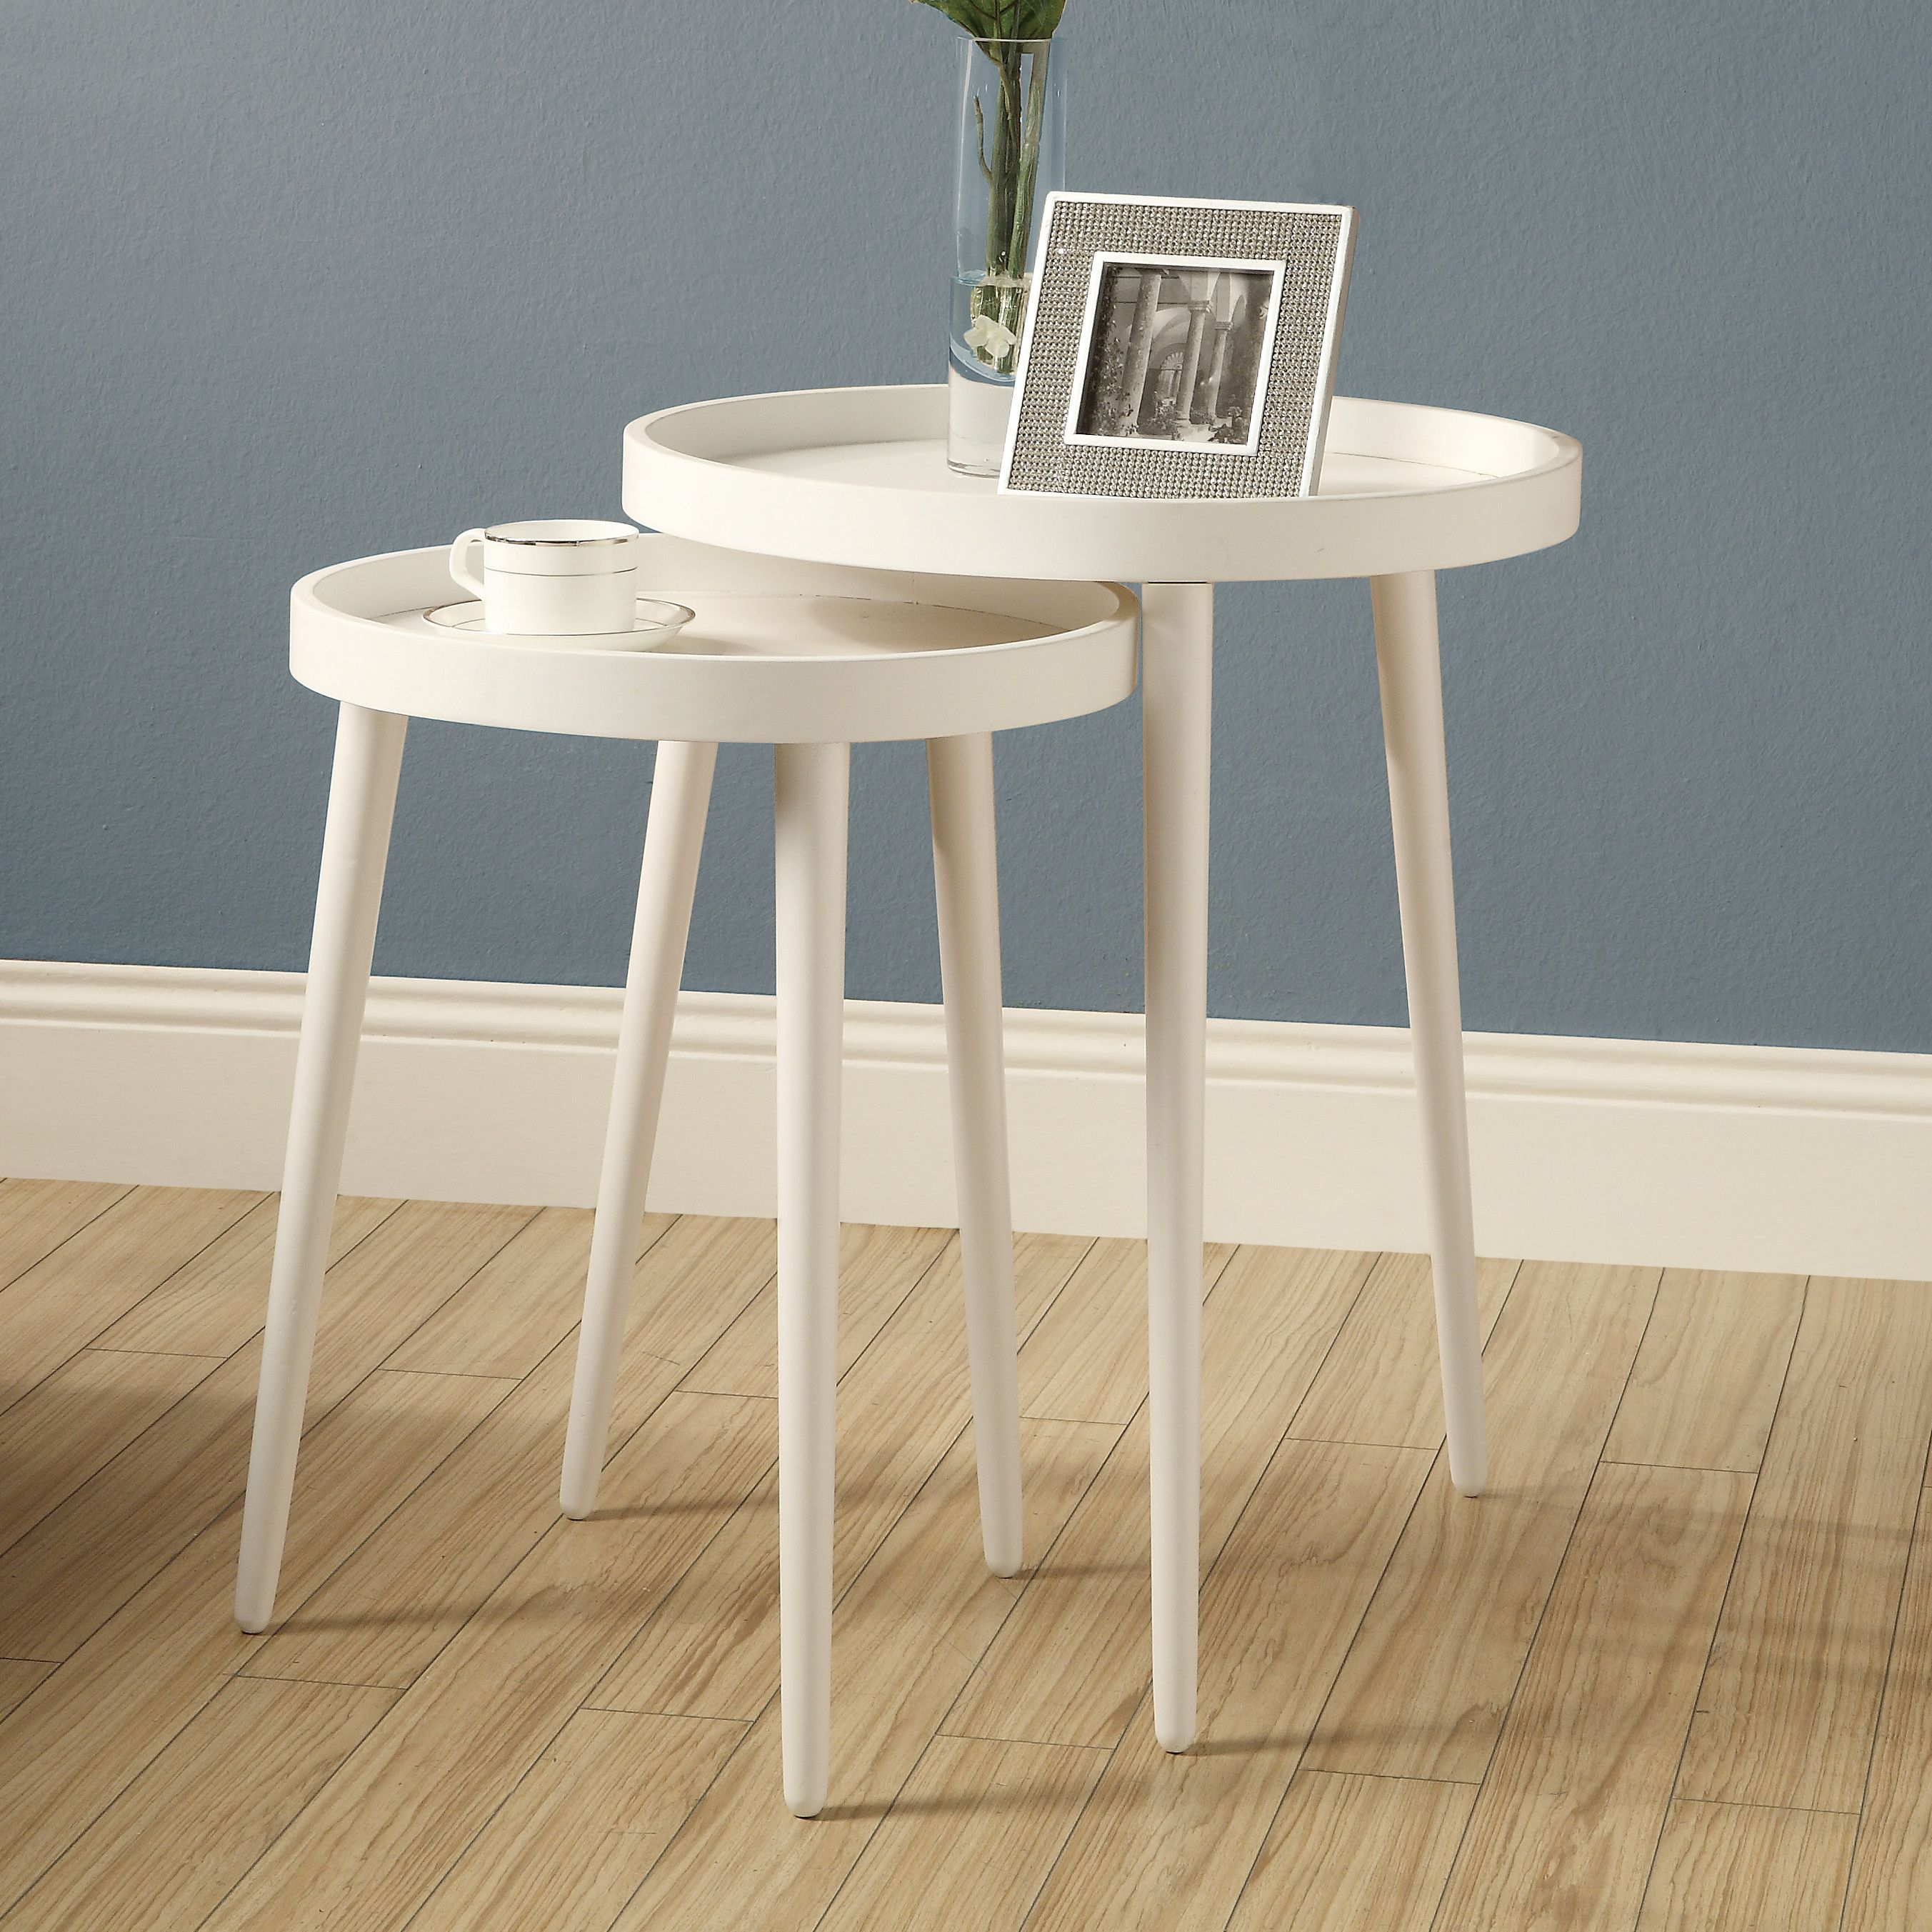 Customer Image Zoomed Nesting tables, Sofa end tables